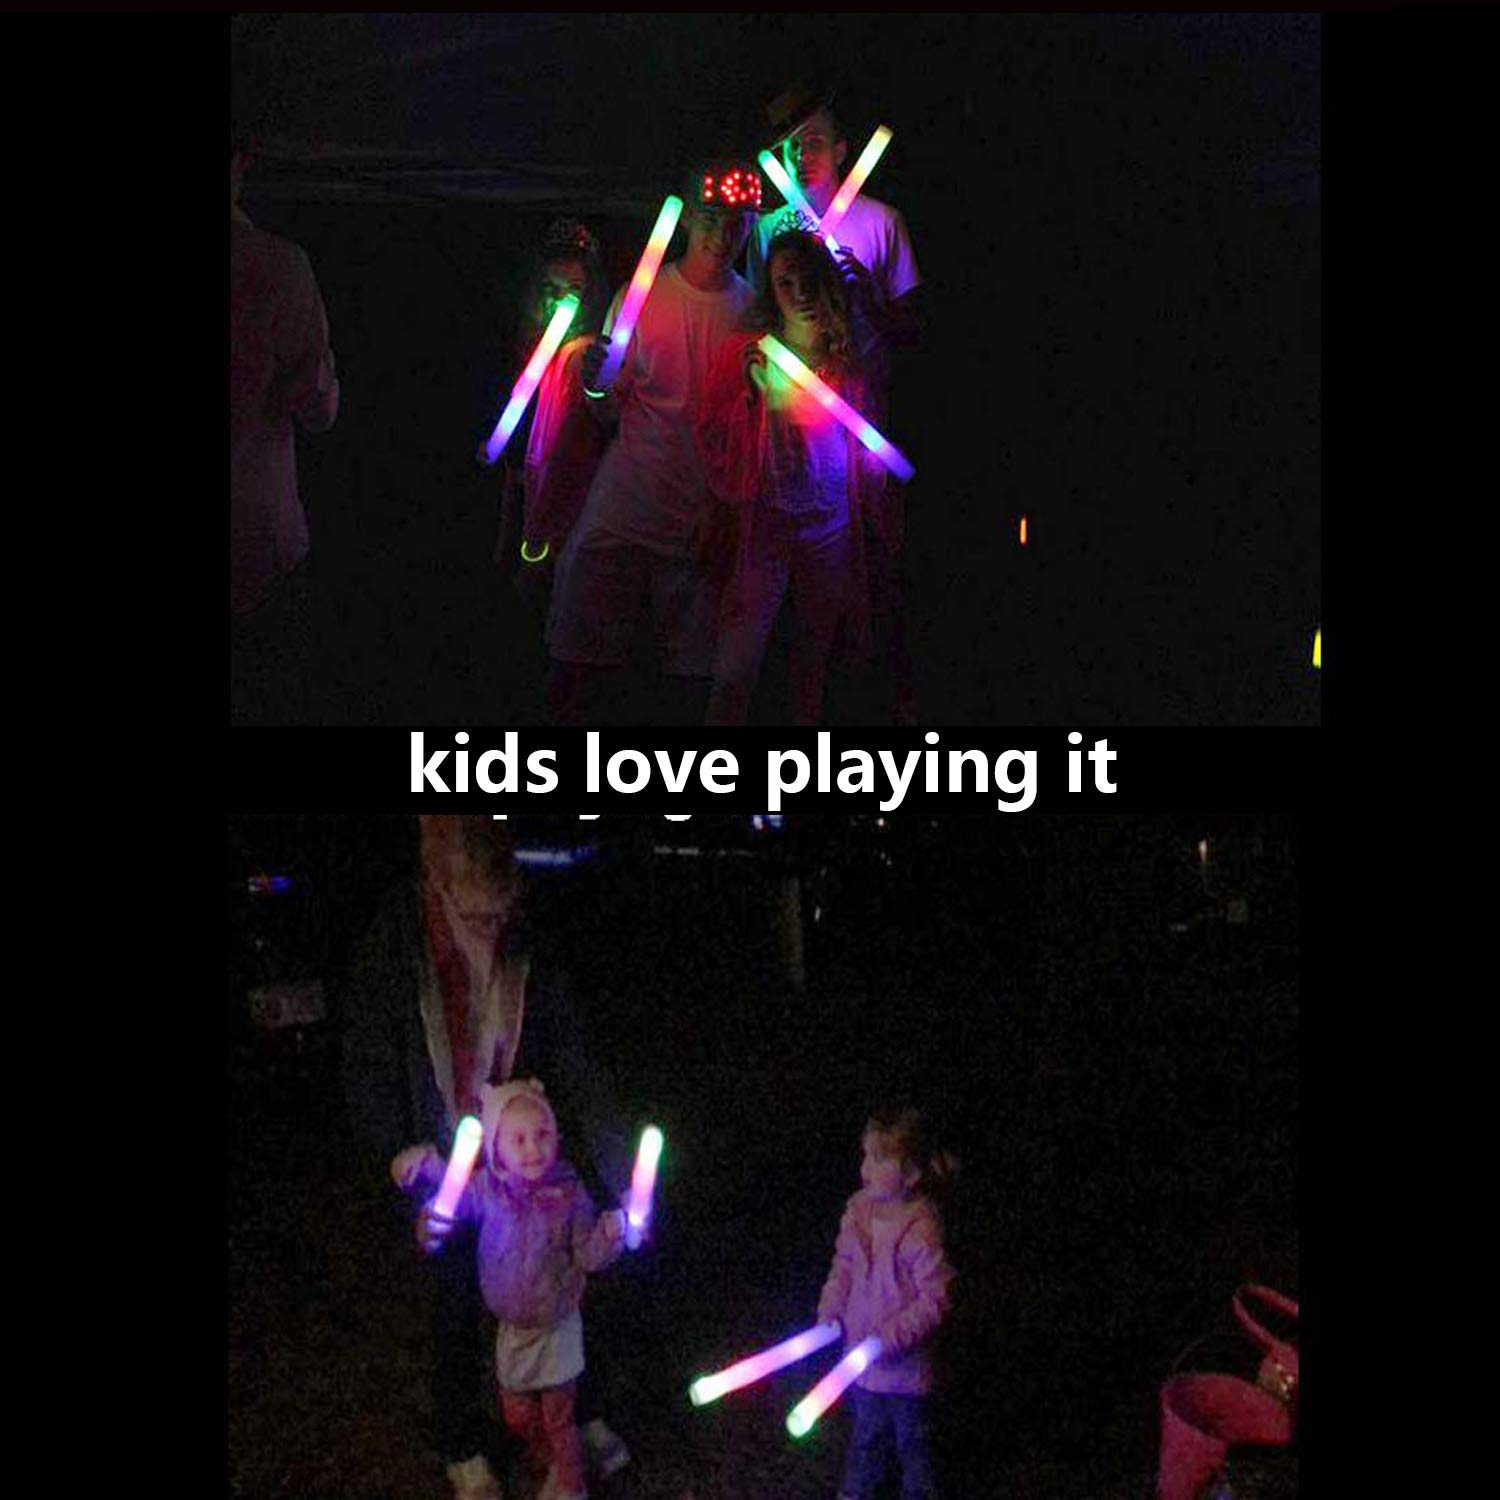 Children Toy Light Up Toys for Party Favors Supplies Festivals Raves YanXi7 30 Pcs Glow Sticks 16 Multicolor LED Light Up Foam Sticks Baton Strobe with 3 Modes Color Changing Flashing